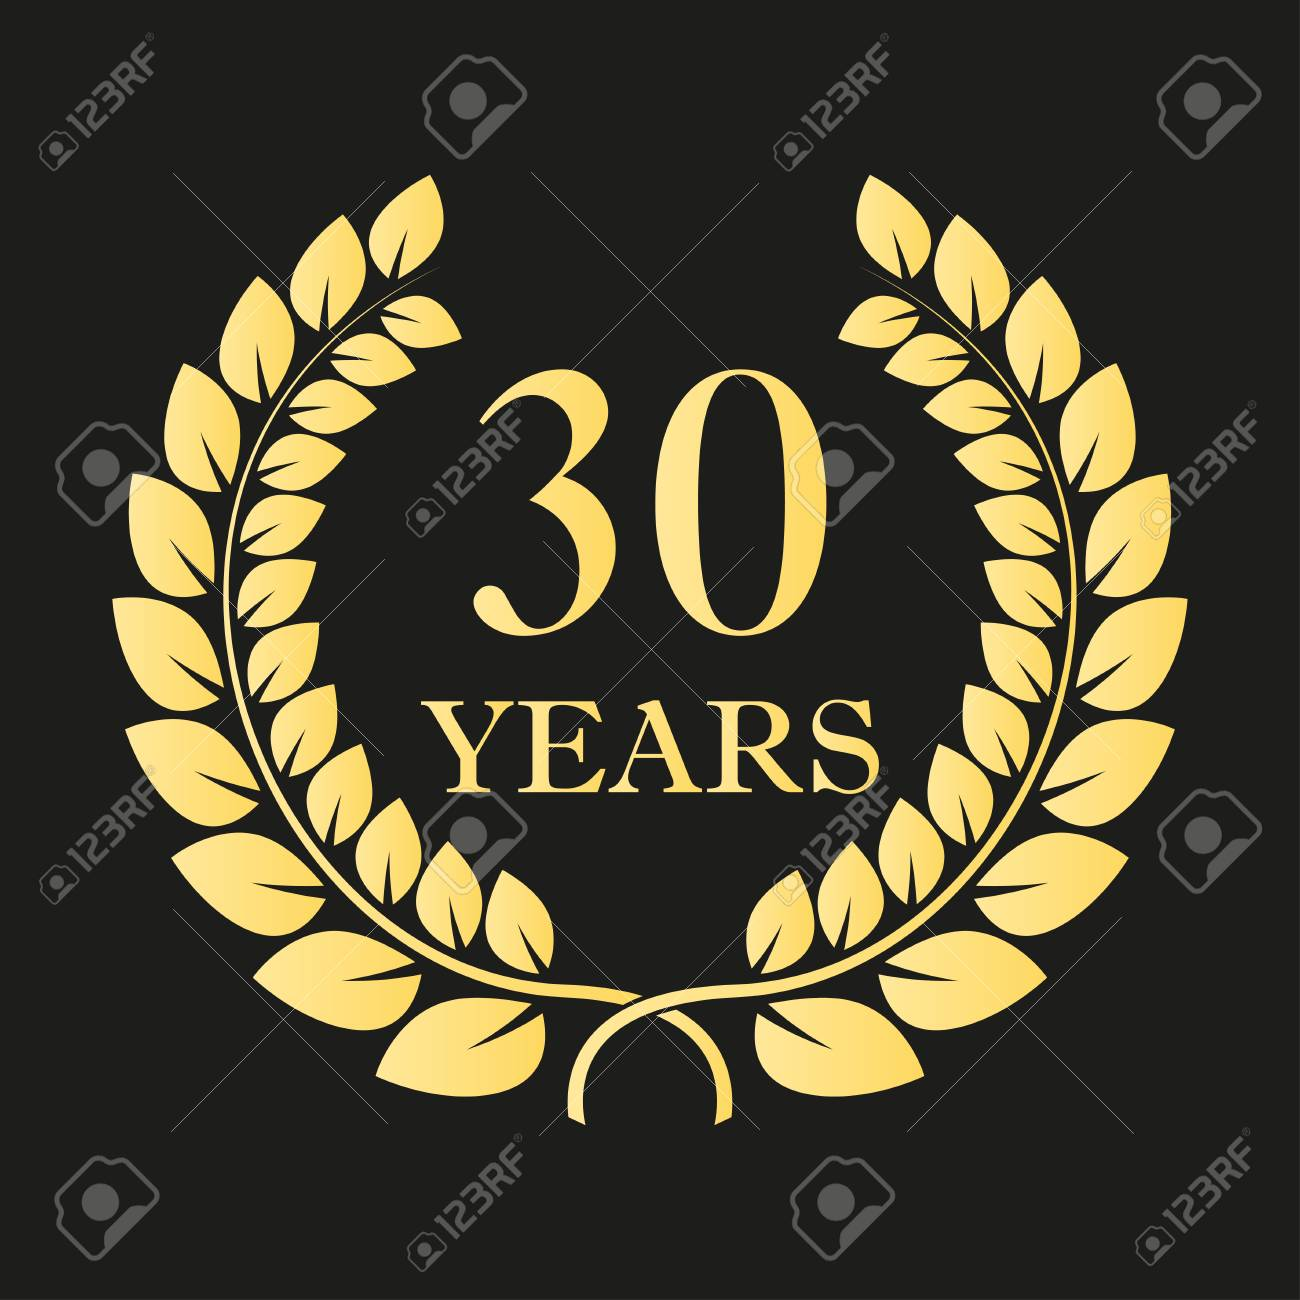 30 years anniversary laurel wreath icon or sign template for